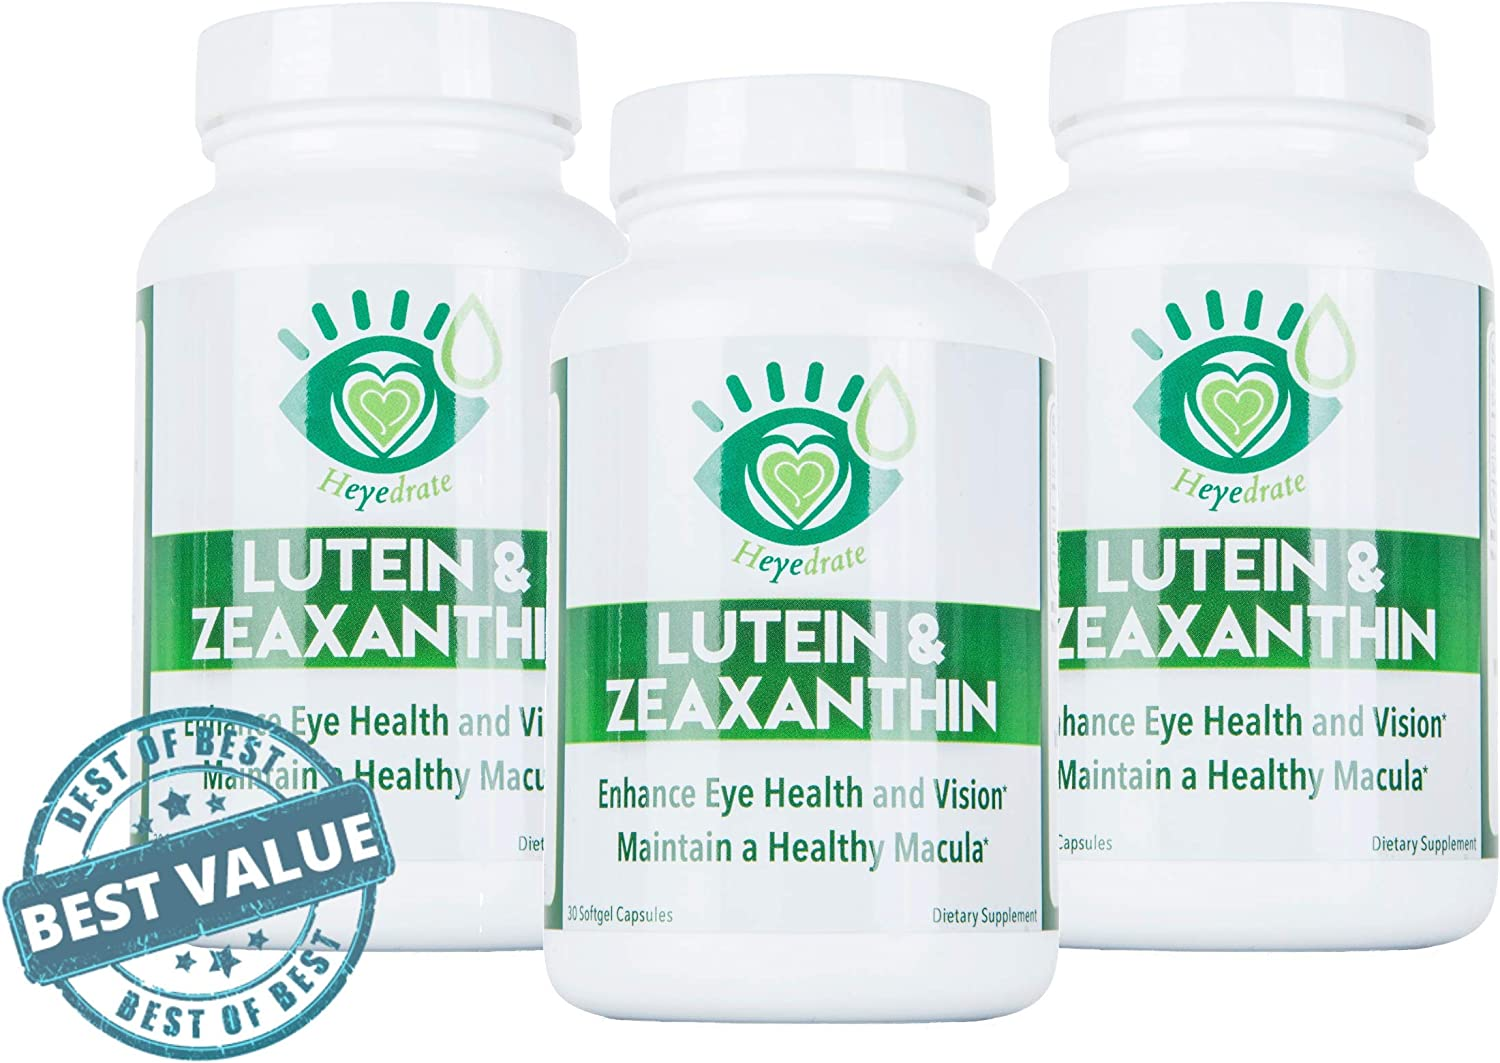 Lutein and Zeaxanthin Vision Supplement - Eye Vitamins to Enhance Eye Health, Vision, and Maintain a Healthy Macula and Retina, Non-GMO, No Soy or Gluten (3 Month Supply)